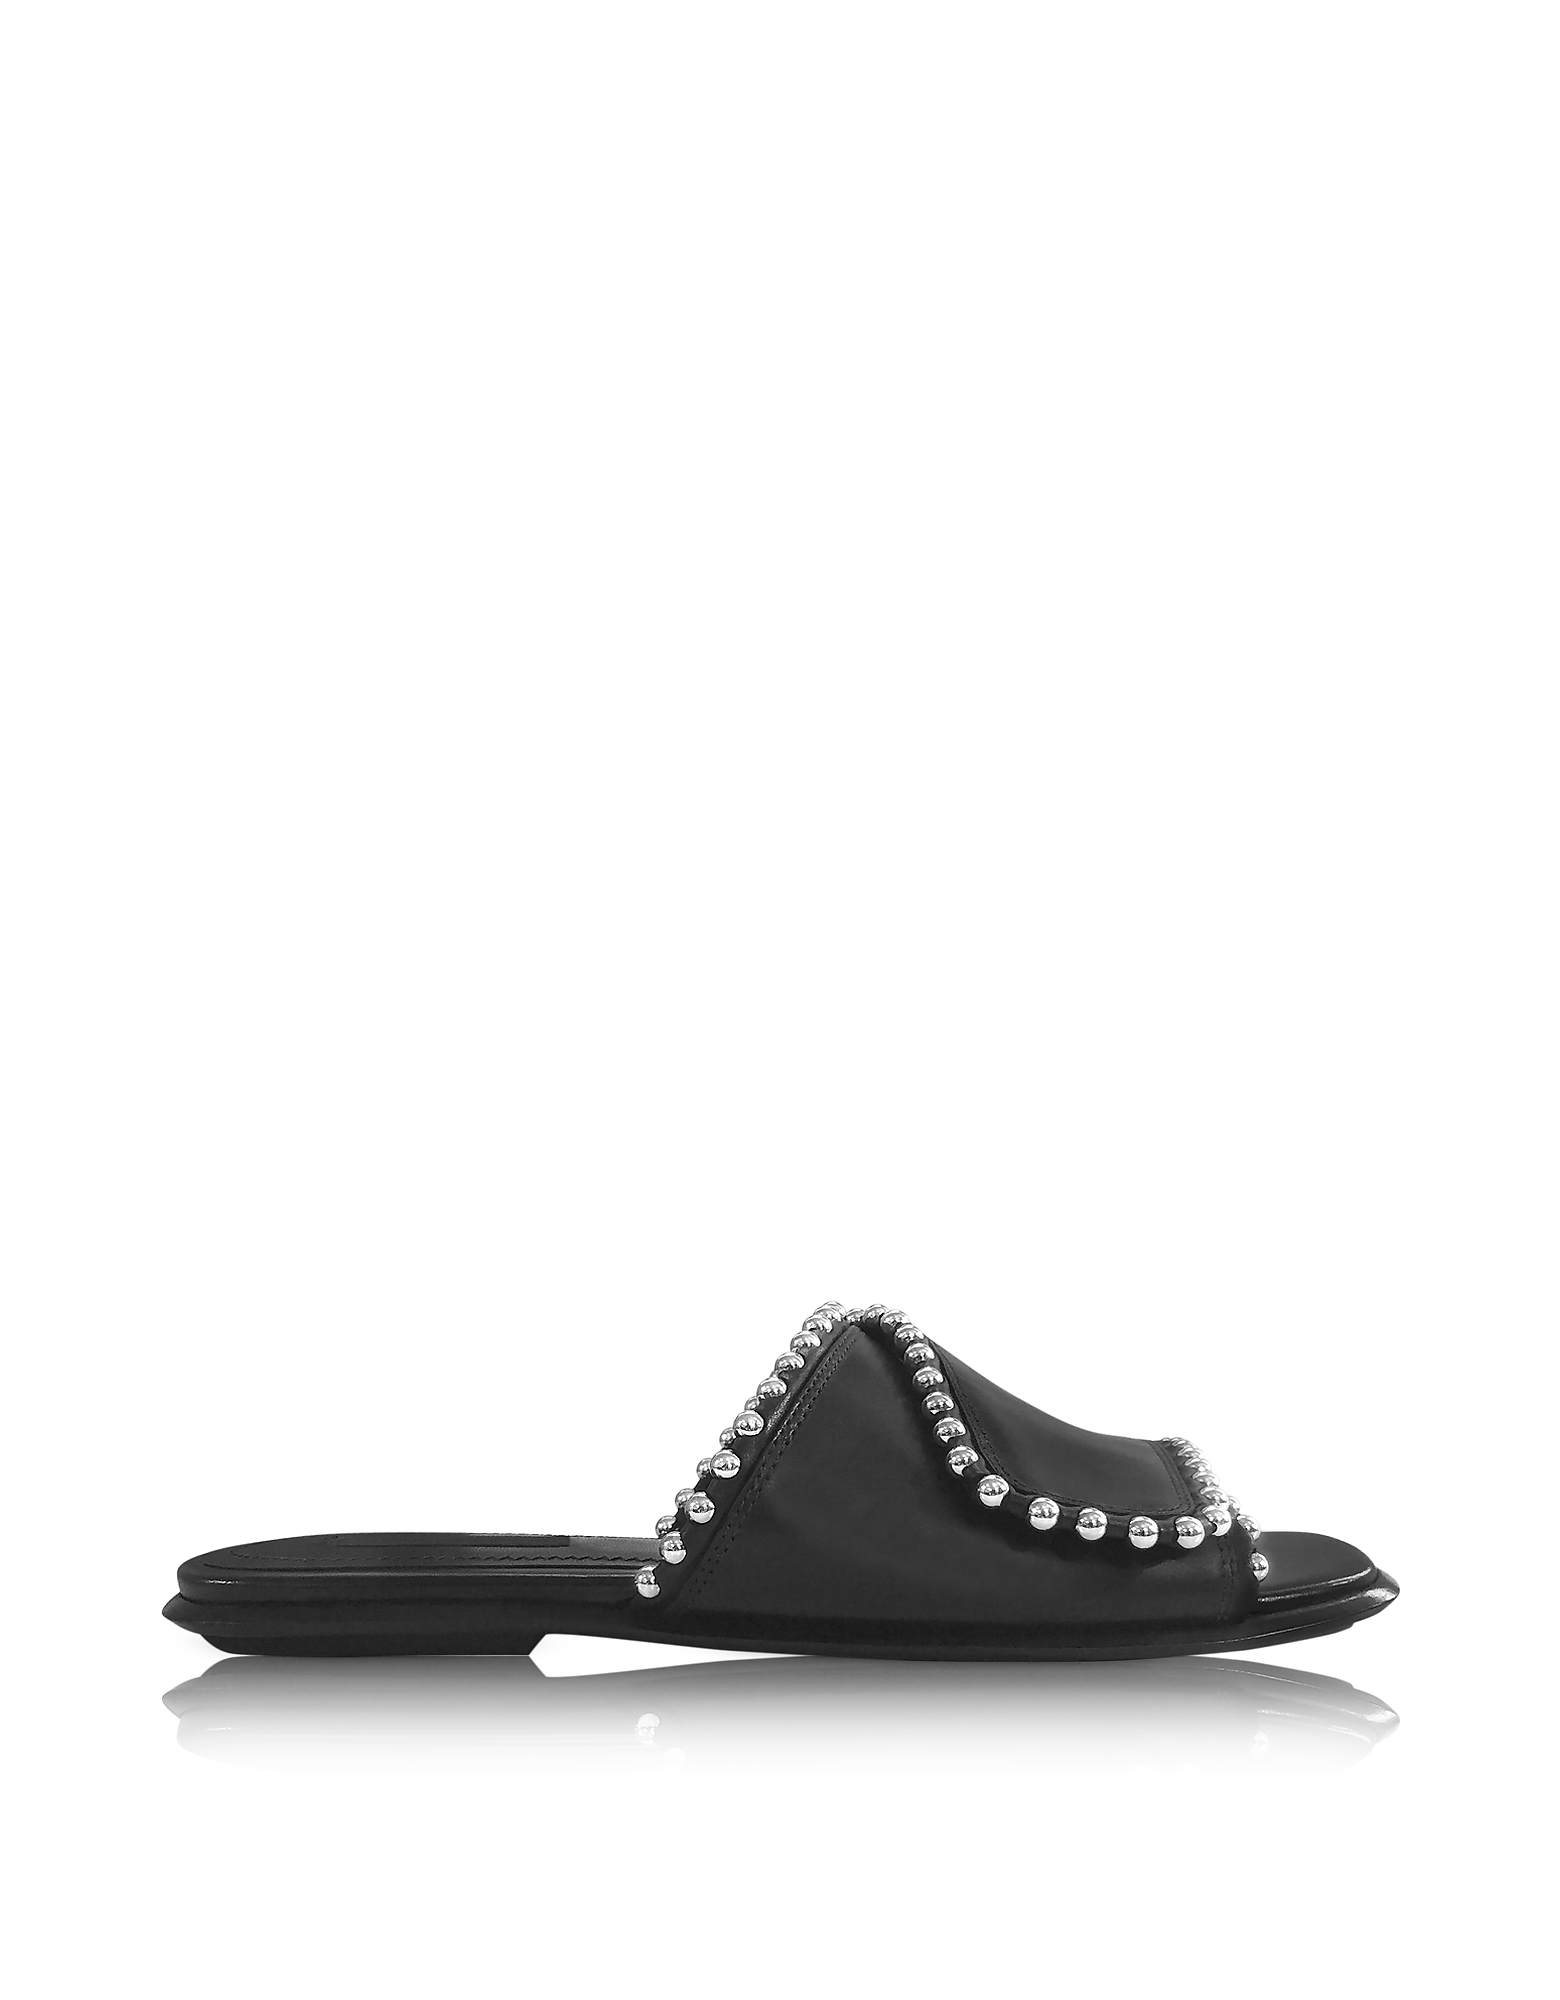 Alexander Wang Shoes, Leidy Black Leather Slide Sandal